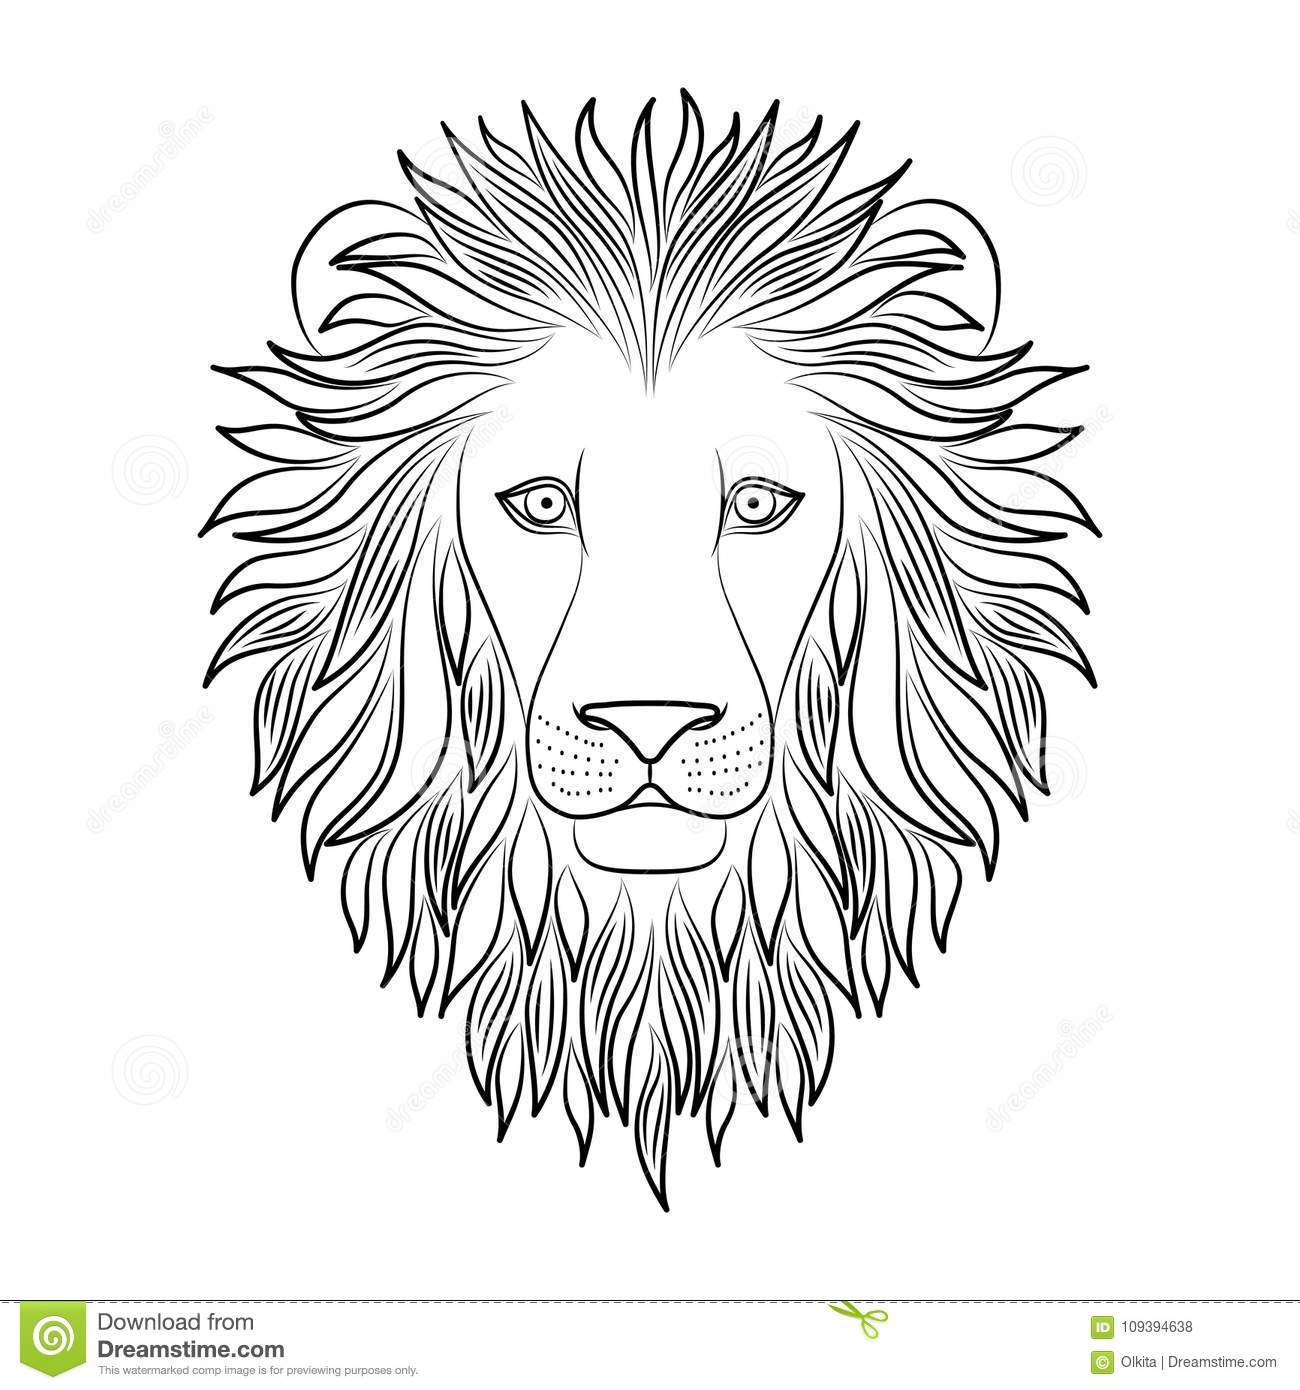 Lion Outline Colouring Stock Illustrations 95 Lion Outline Colouring Stock Illustrations Vectors Clipart Dreamstime Check out our lion for coloring selection for the very best in unique or custom, handmade pieces from our shops. dreamstime com